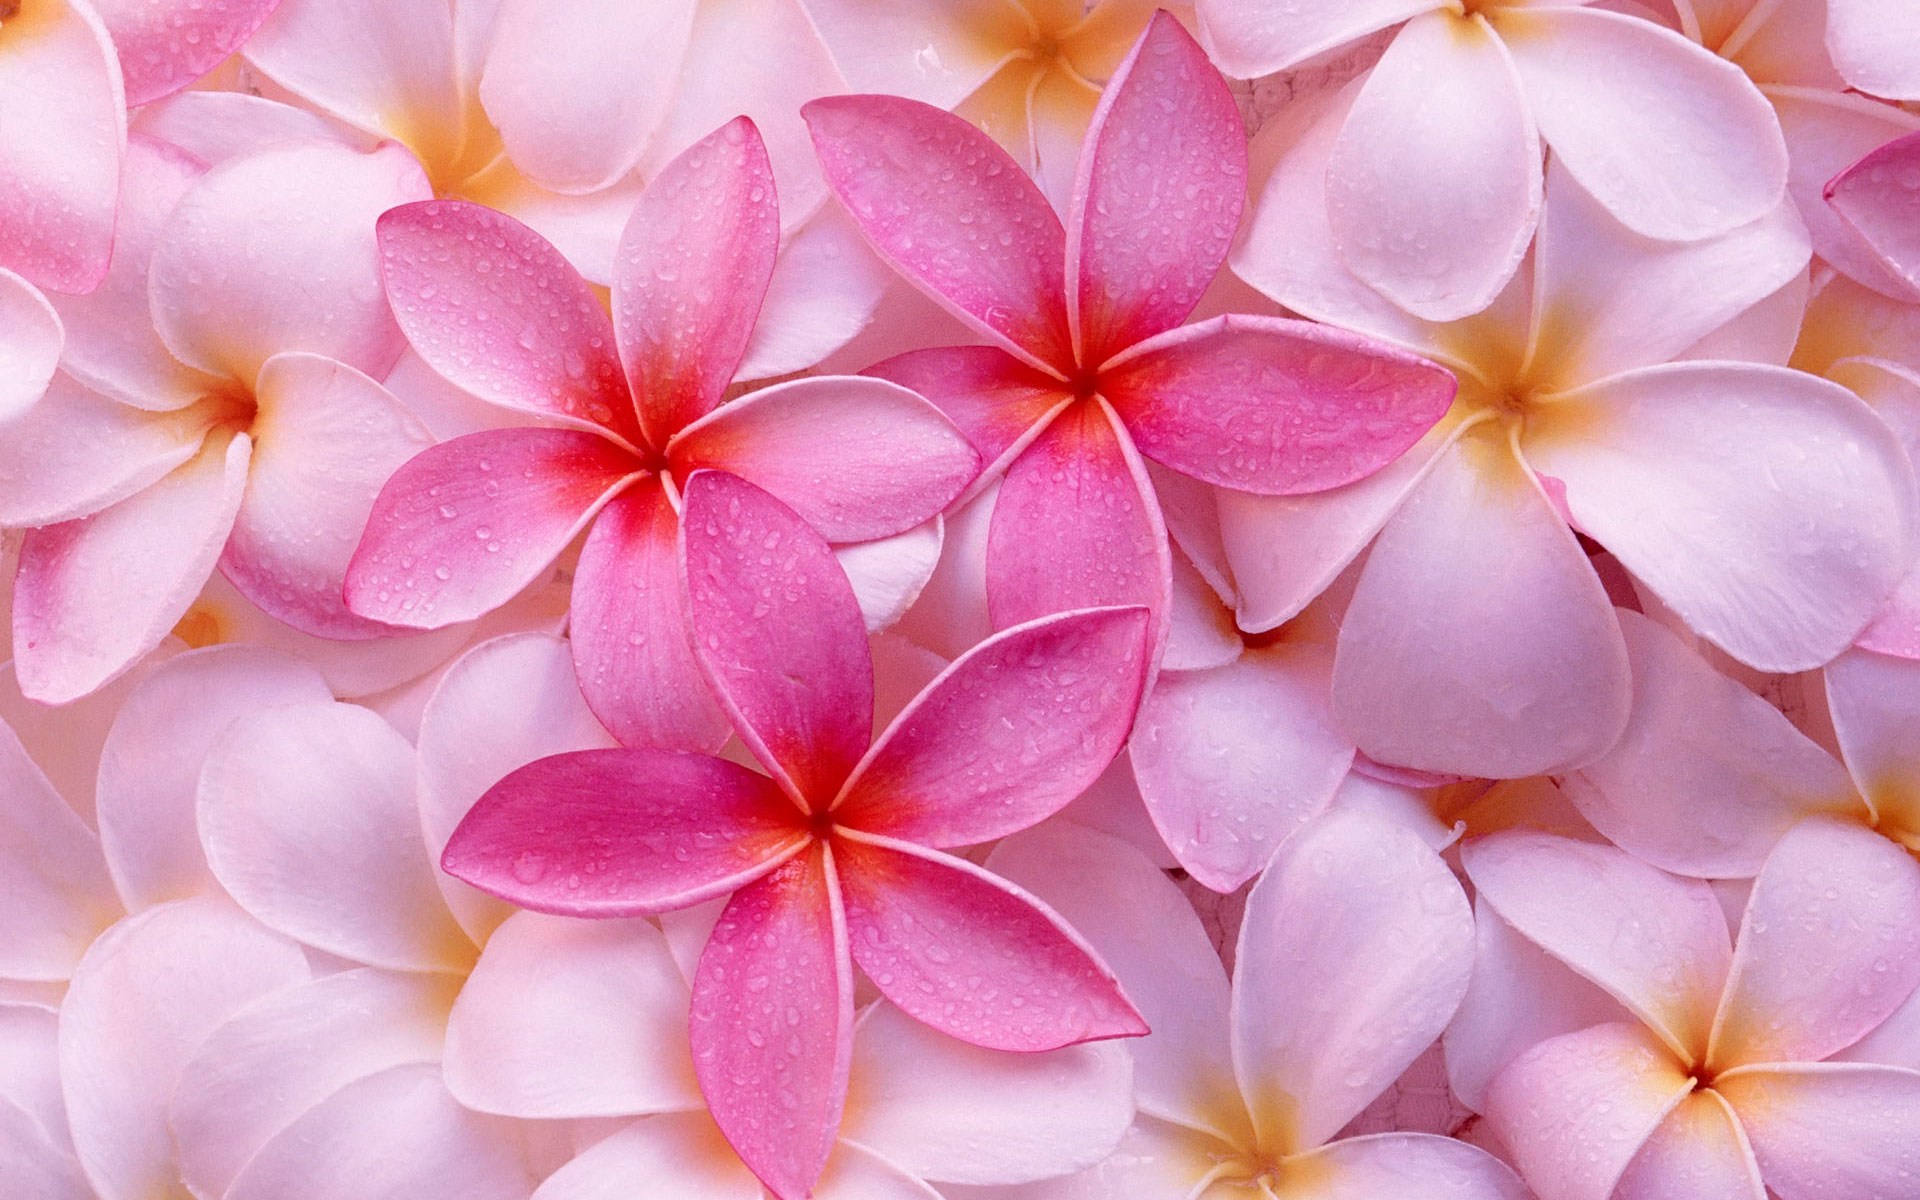 Astounding Wallpapers Tumblr: Stunning Flowers Tropical Plumeria Desktop Pc Picture Wallpaper Background 1920x1200px